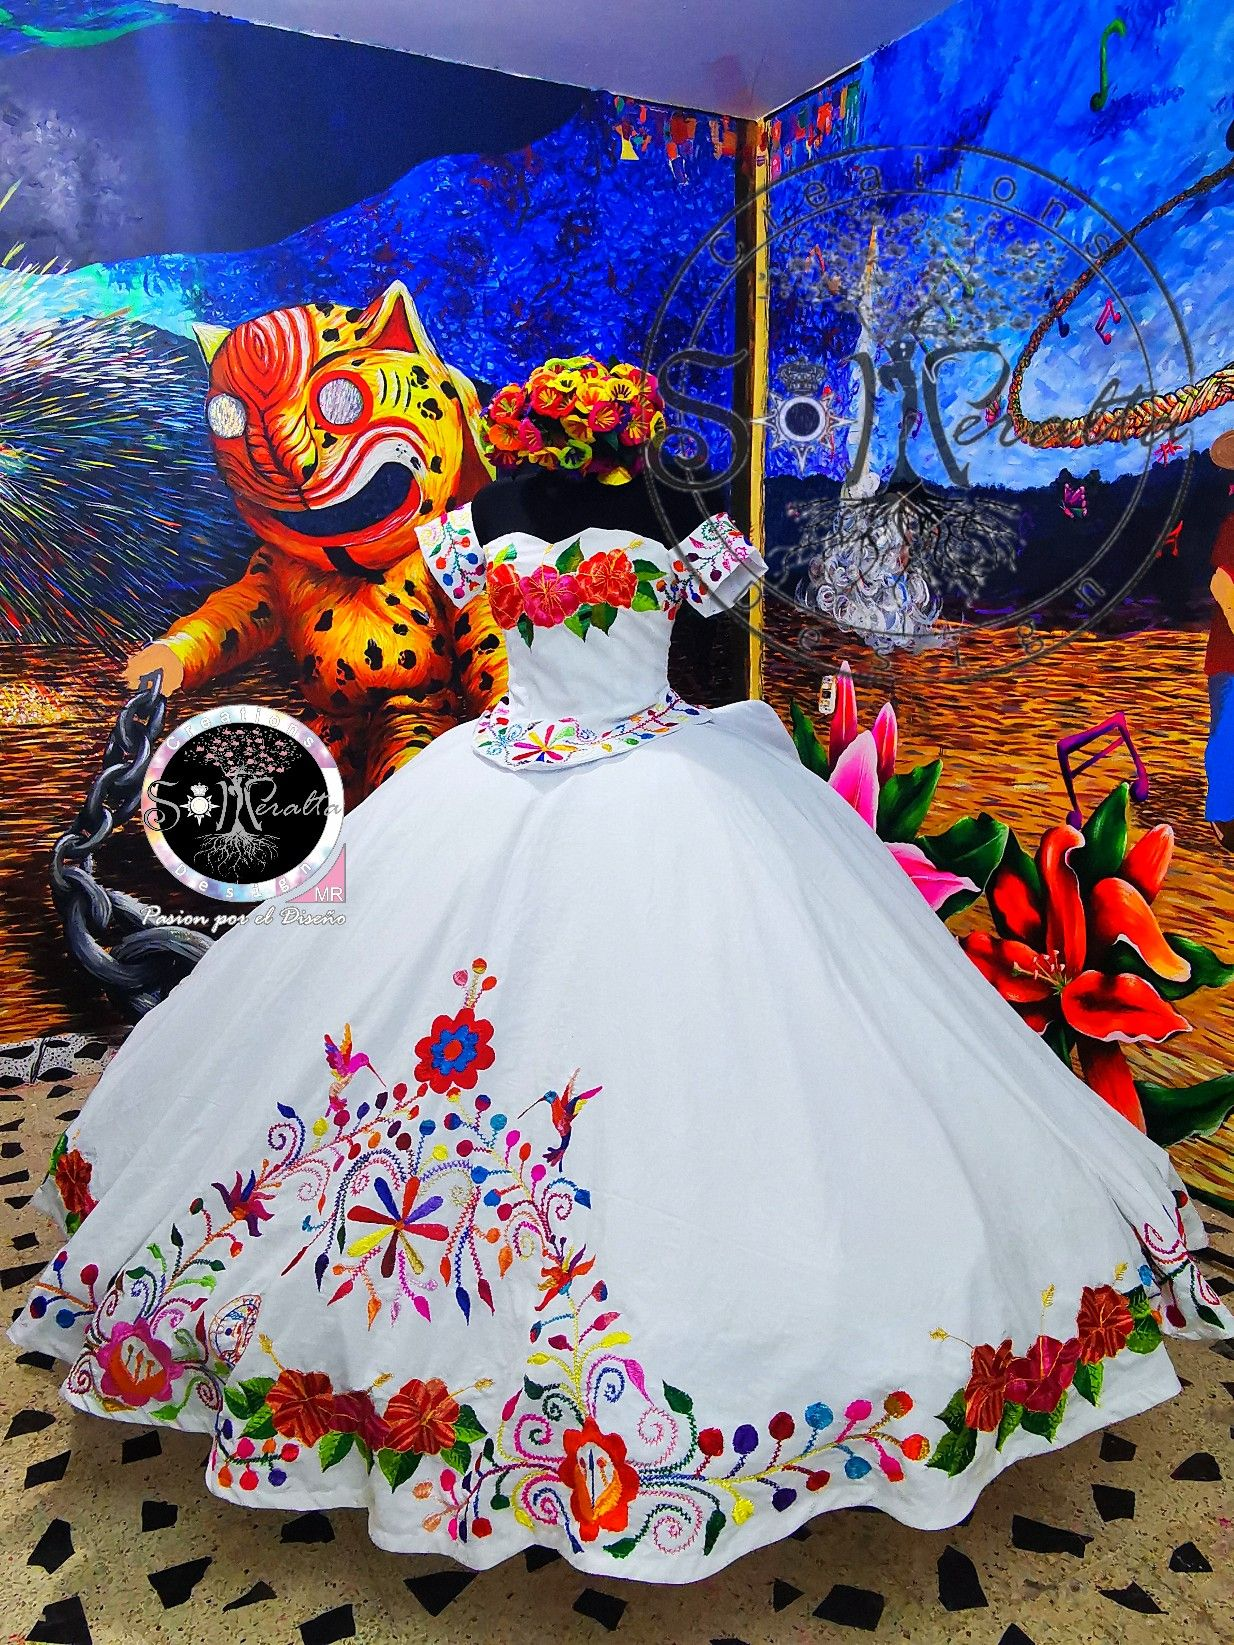 white quinceanera dress,most expensive quinceanera dress,western quinceanera convertable dress,floral embroidery quinceanera dress,traditional quinceanera dress etsy,quinceanera dress with short sleeves,traditional mexican quinceanera dress,mexican themed quinceanera dress,mexican quinceanera floflorico dress,two piece modern quinceanera dress,otomi quinceanera dress,